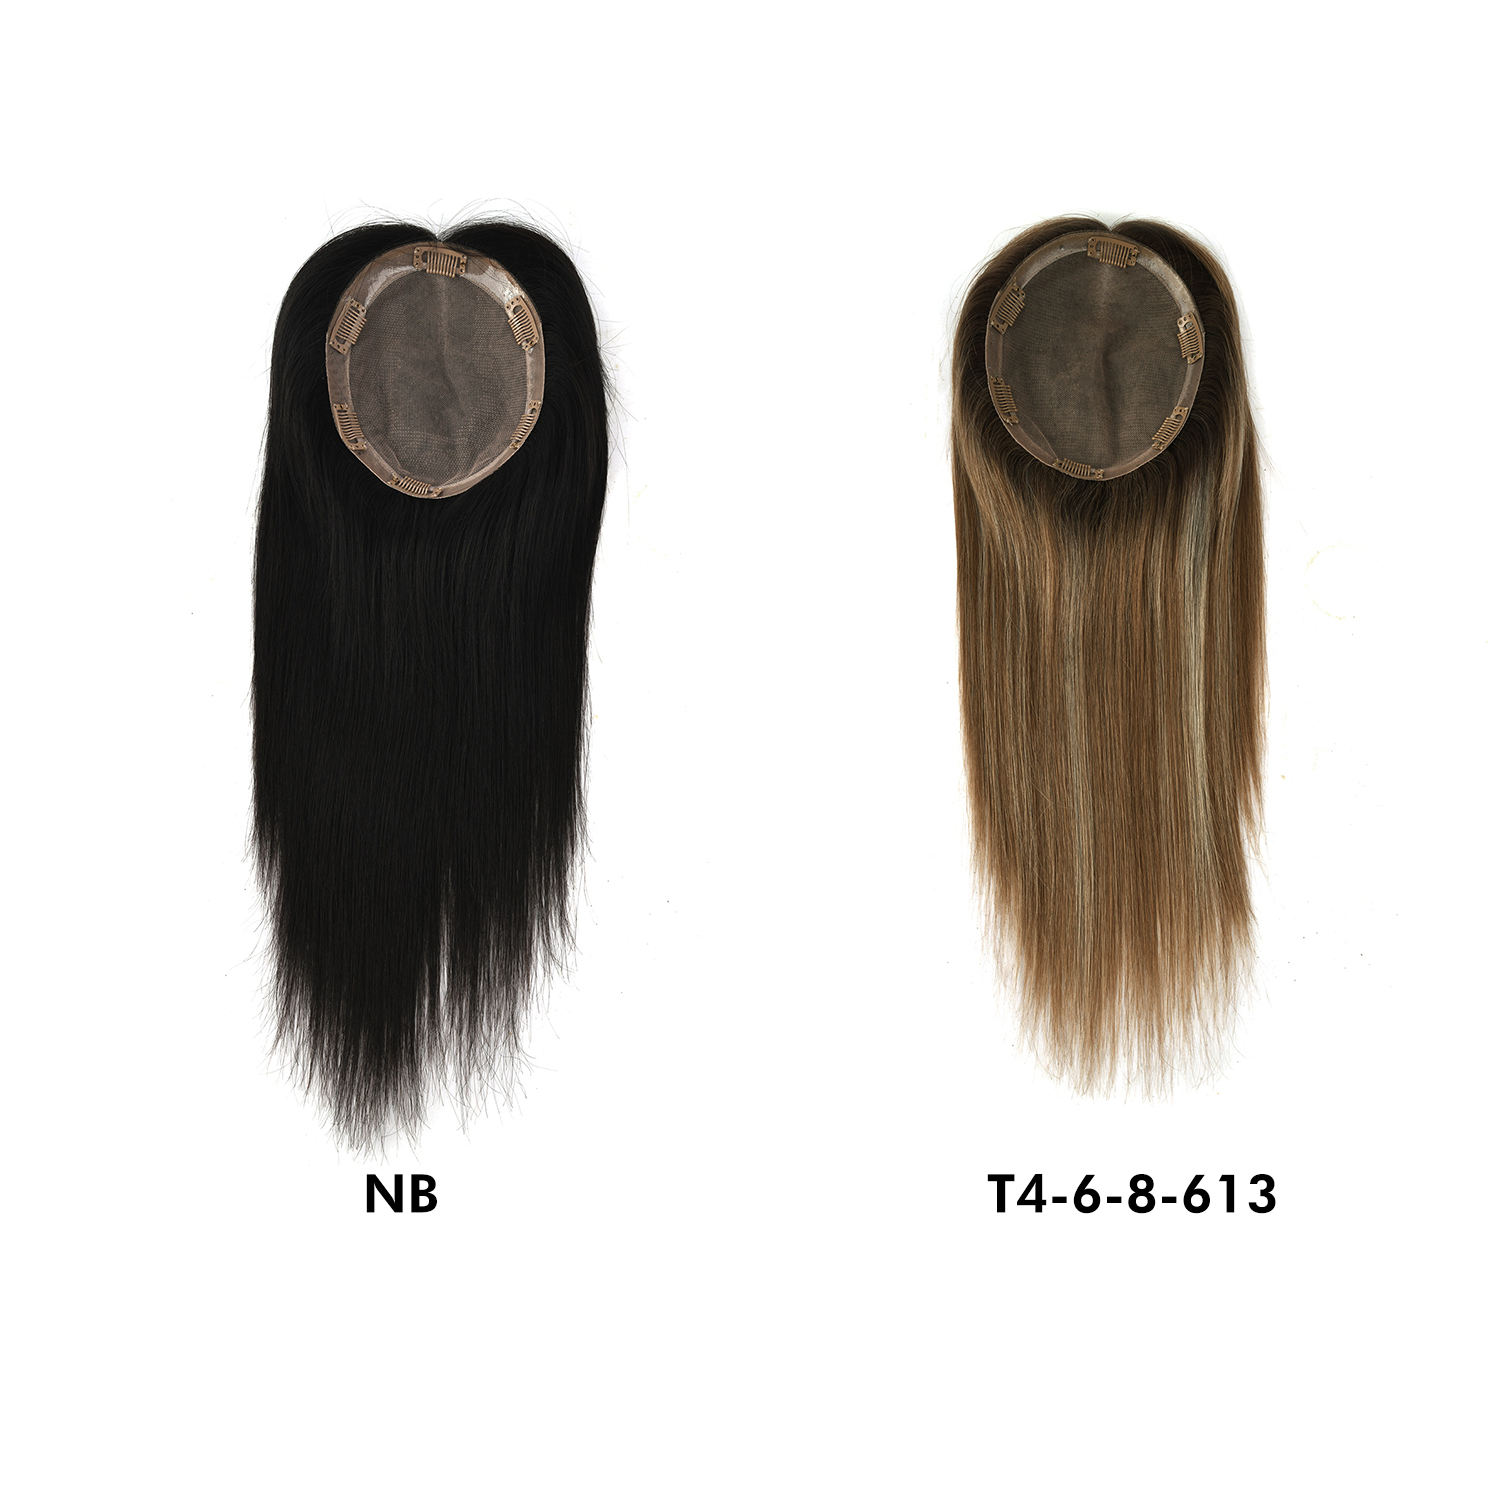 K.S WIGS Silk Base Virgin Cuticle Aligned 100% Brazilian Human Hair Toupee Women Topper Natural Hair extension